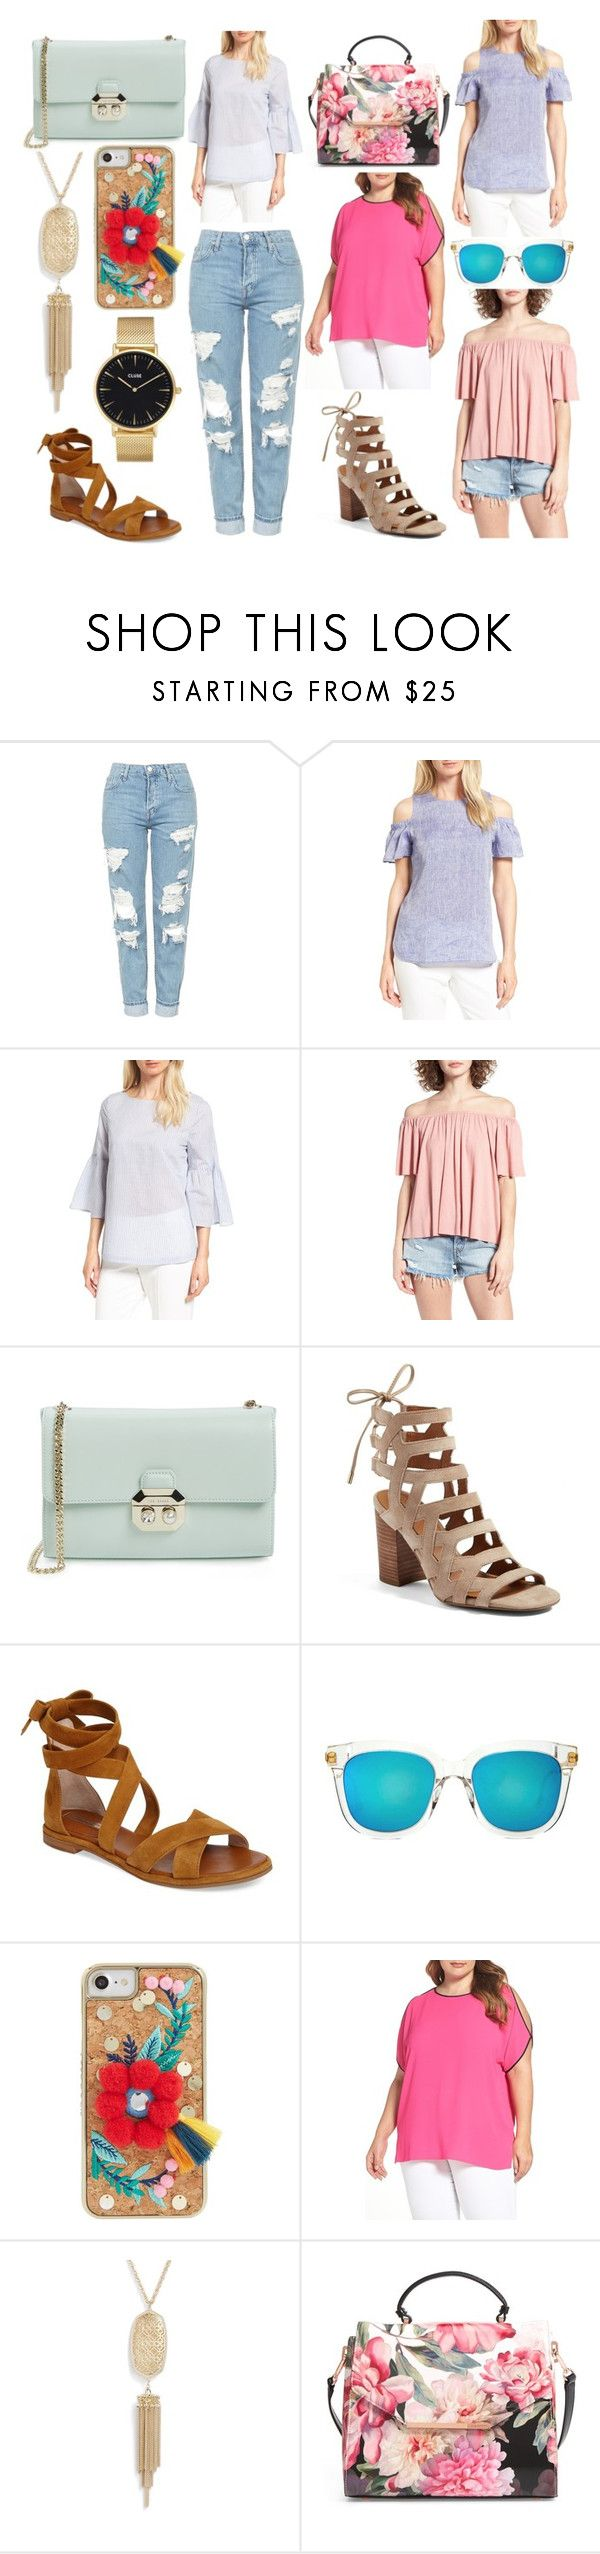 """""""NORDSTROM HALF YEARLY SALE"""" by fashionbeautydecor ❤ liked on Polyvore featuring Topshop, Nordstrom Collection, BP., Ted Baker, Franco Sarto, Louise et Cie, Gentle Monster, Skinnydip, Vince Camuto and Kendra Scott"""